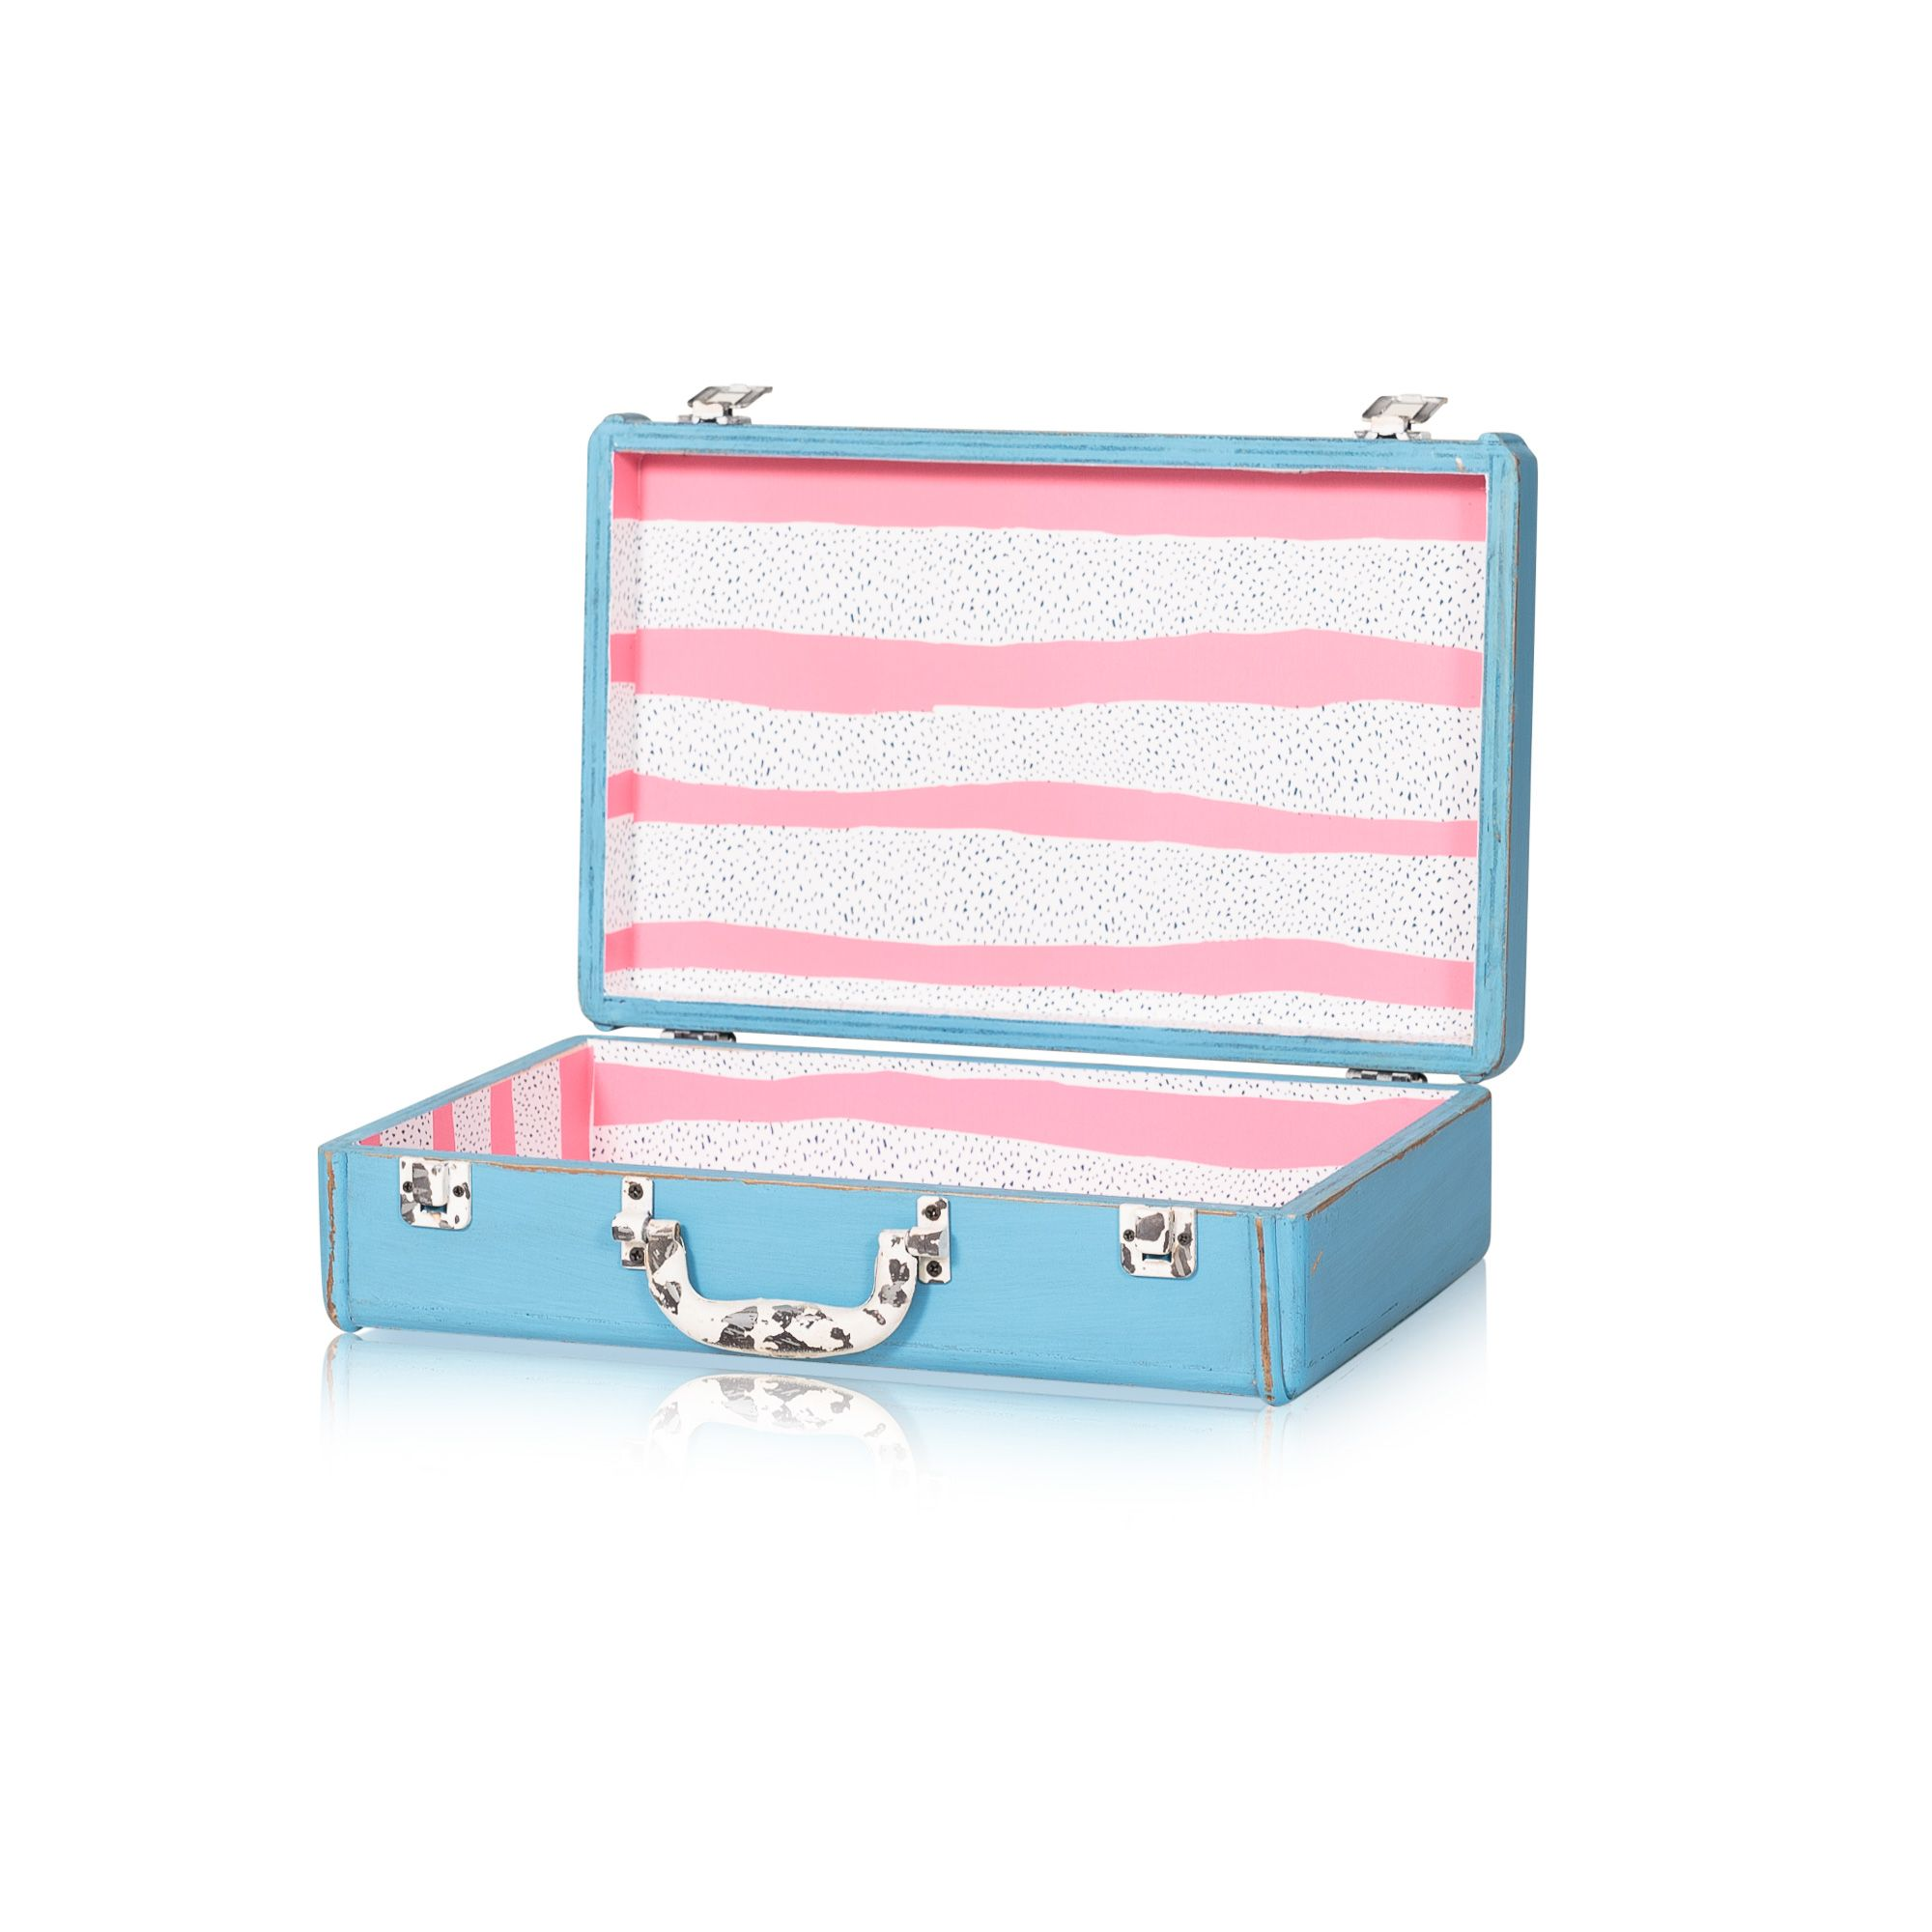 Buy The Extra Small Loft Decorative Storage Suitcase At Oliver Bonas. Enjoy  Free UK Standard Delivery For Orders Over £50.